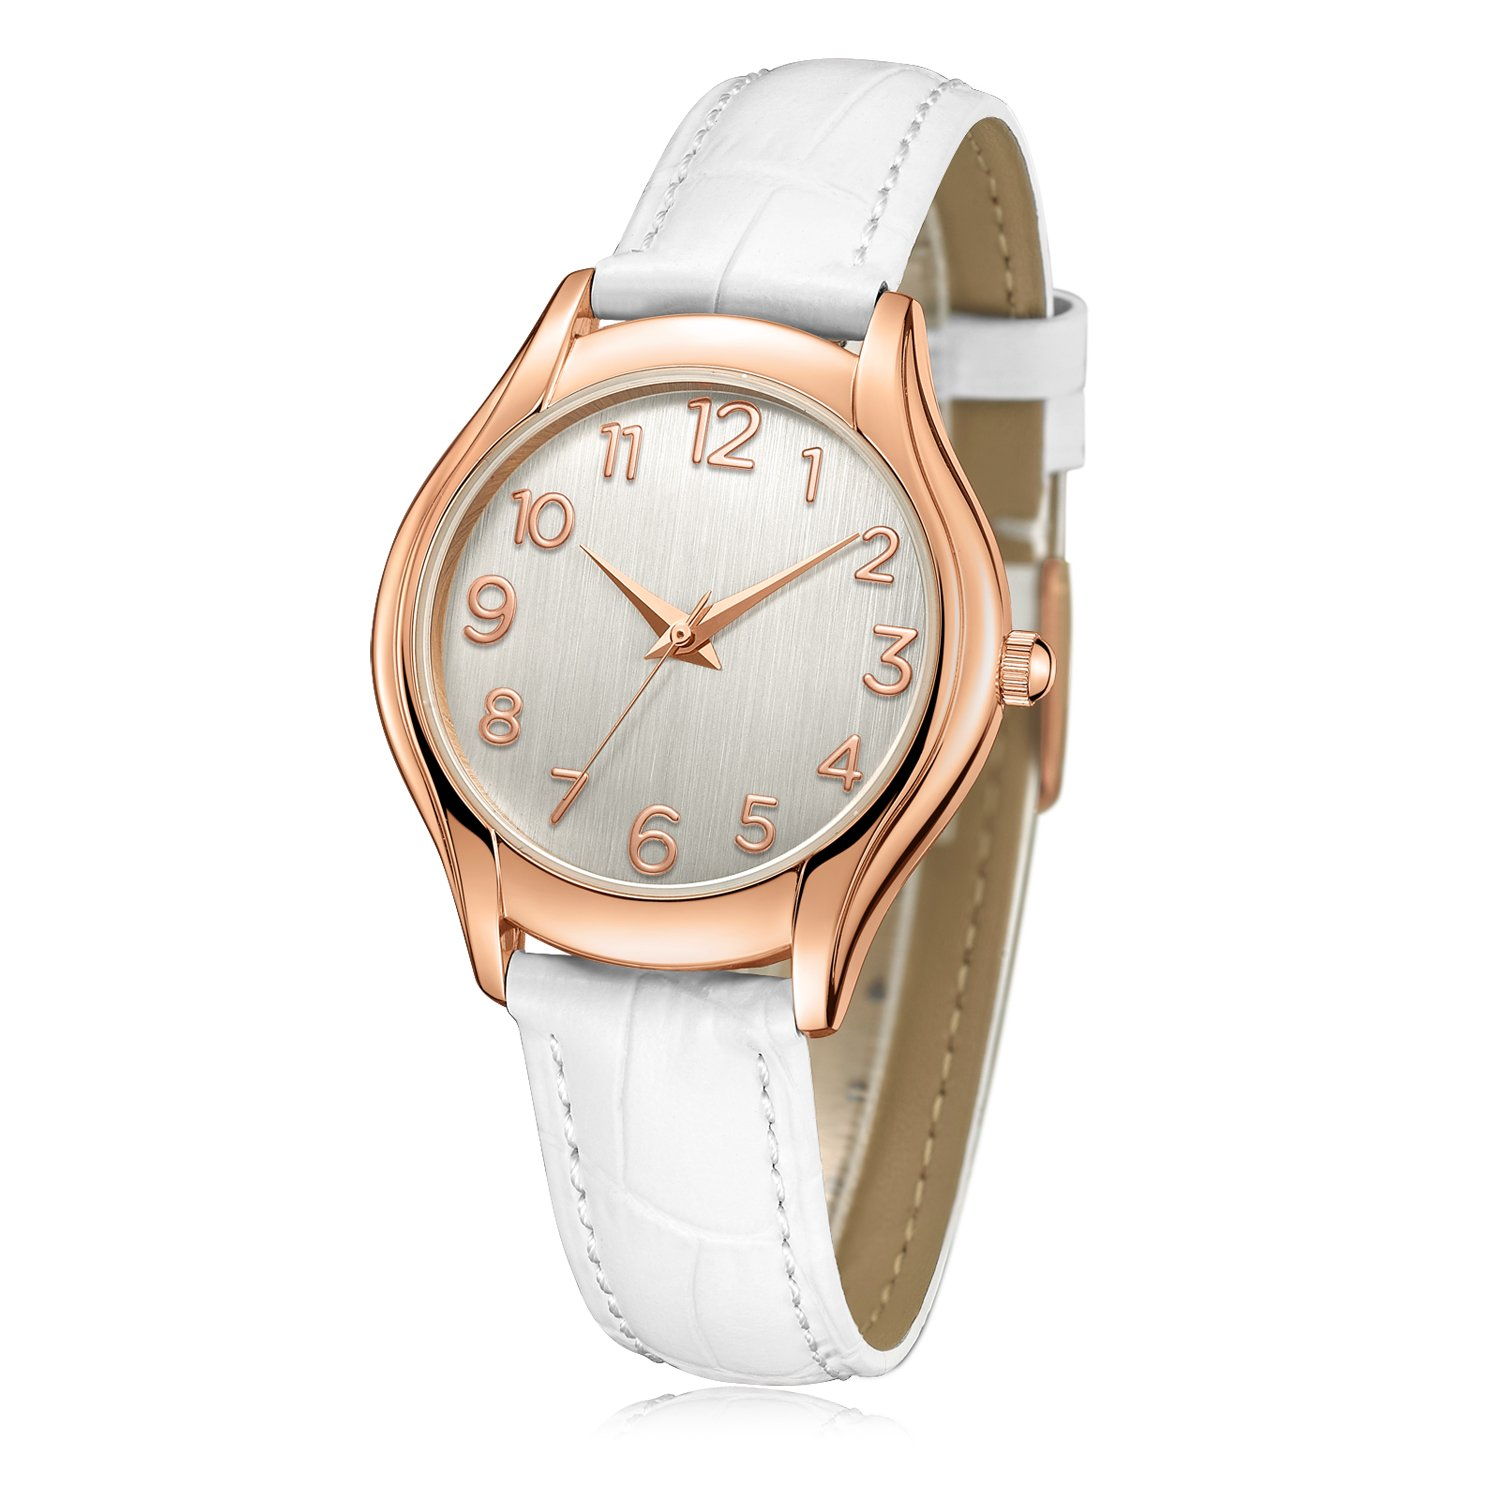 Women's Wrist Watch, Arabic Numeral Rose Gold Simple Business Casual Fashion Classic Analog (Quartz) Watches with Genuine Leather Band C74614 (White)